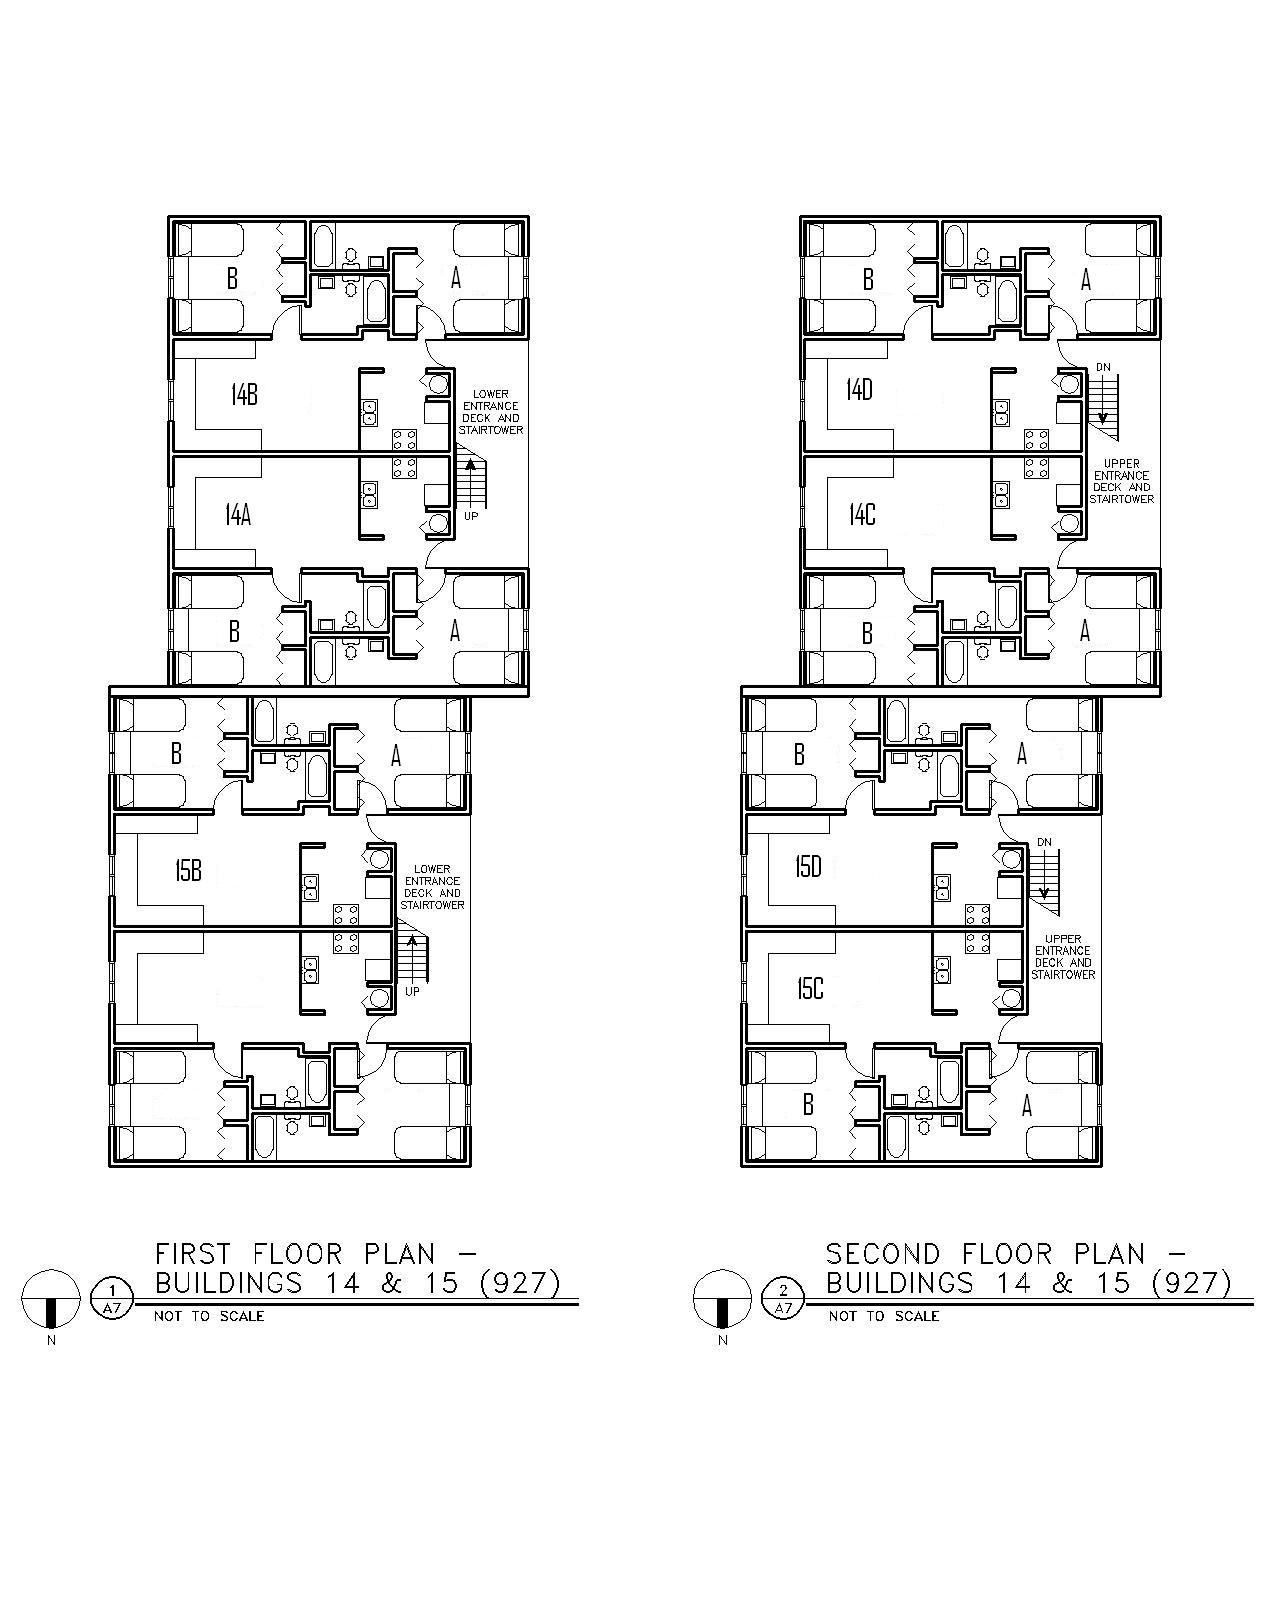 Floor Plan for Buildings 14 & 15